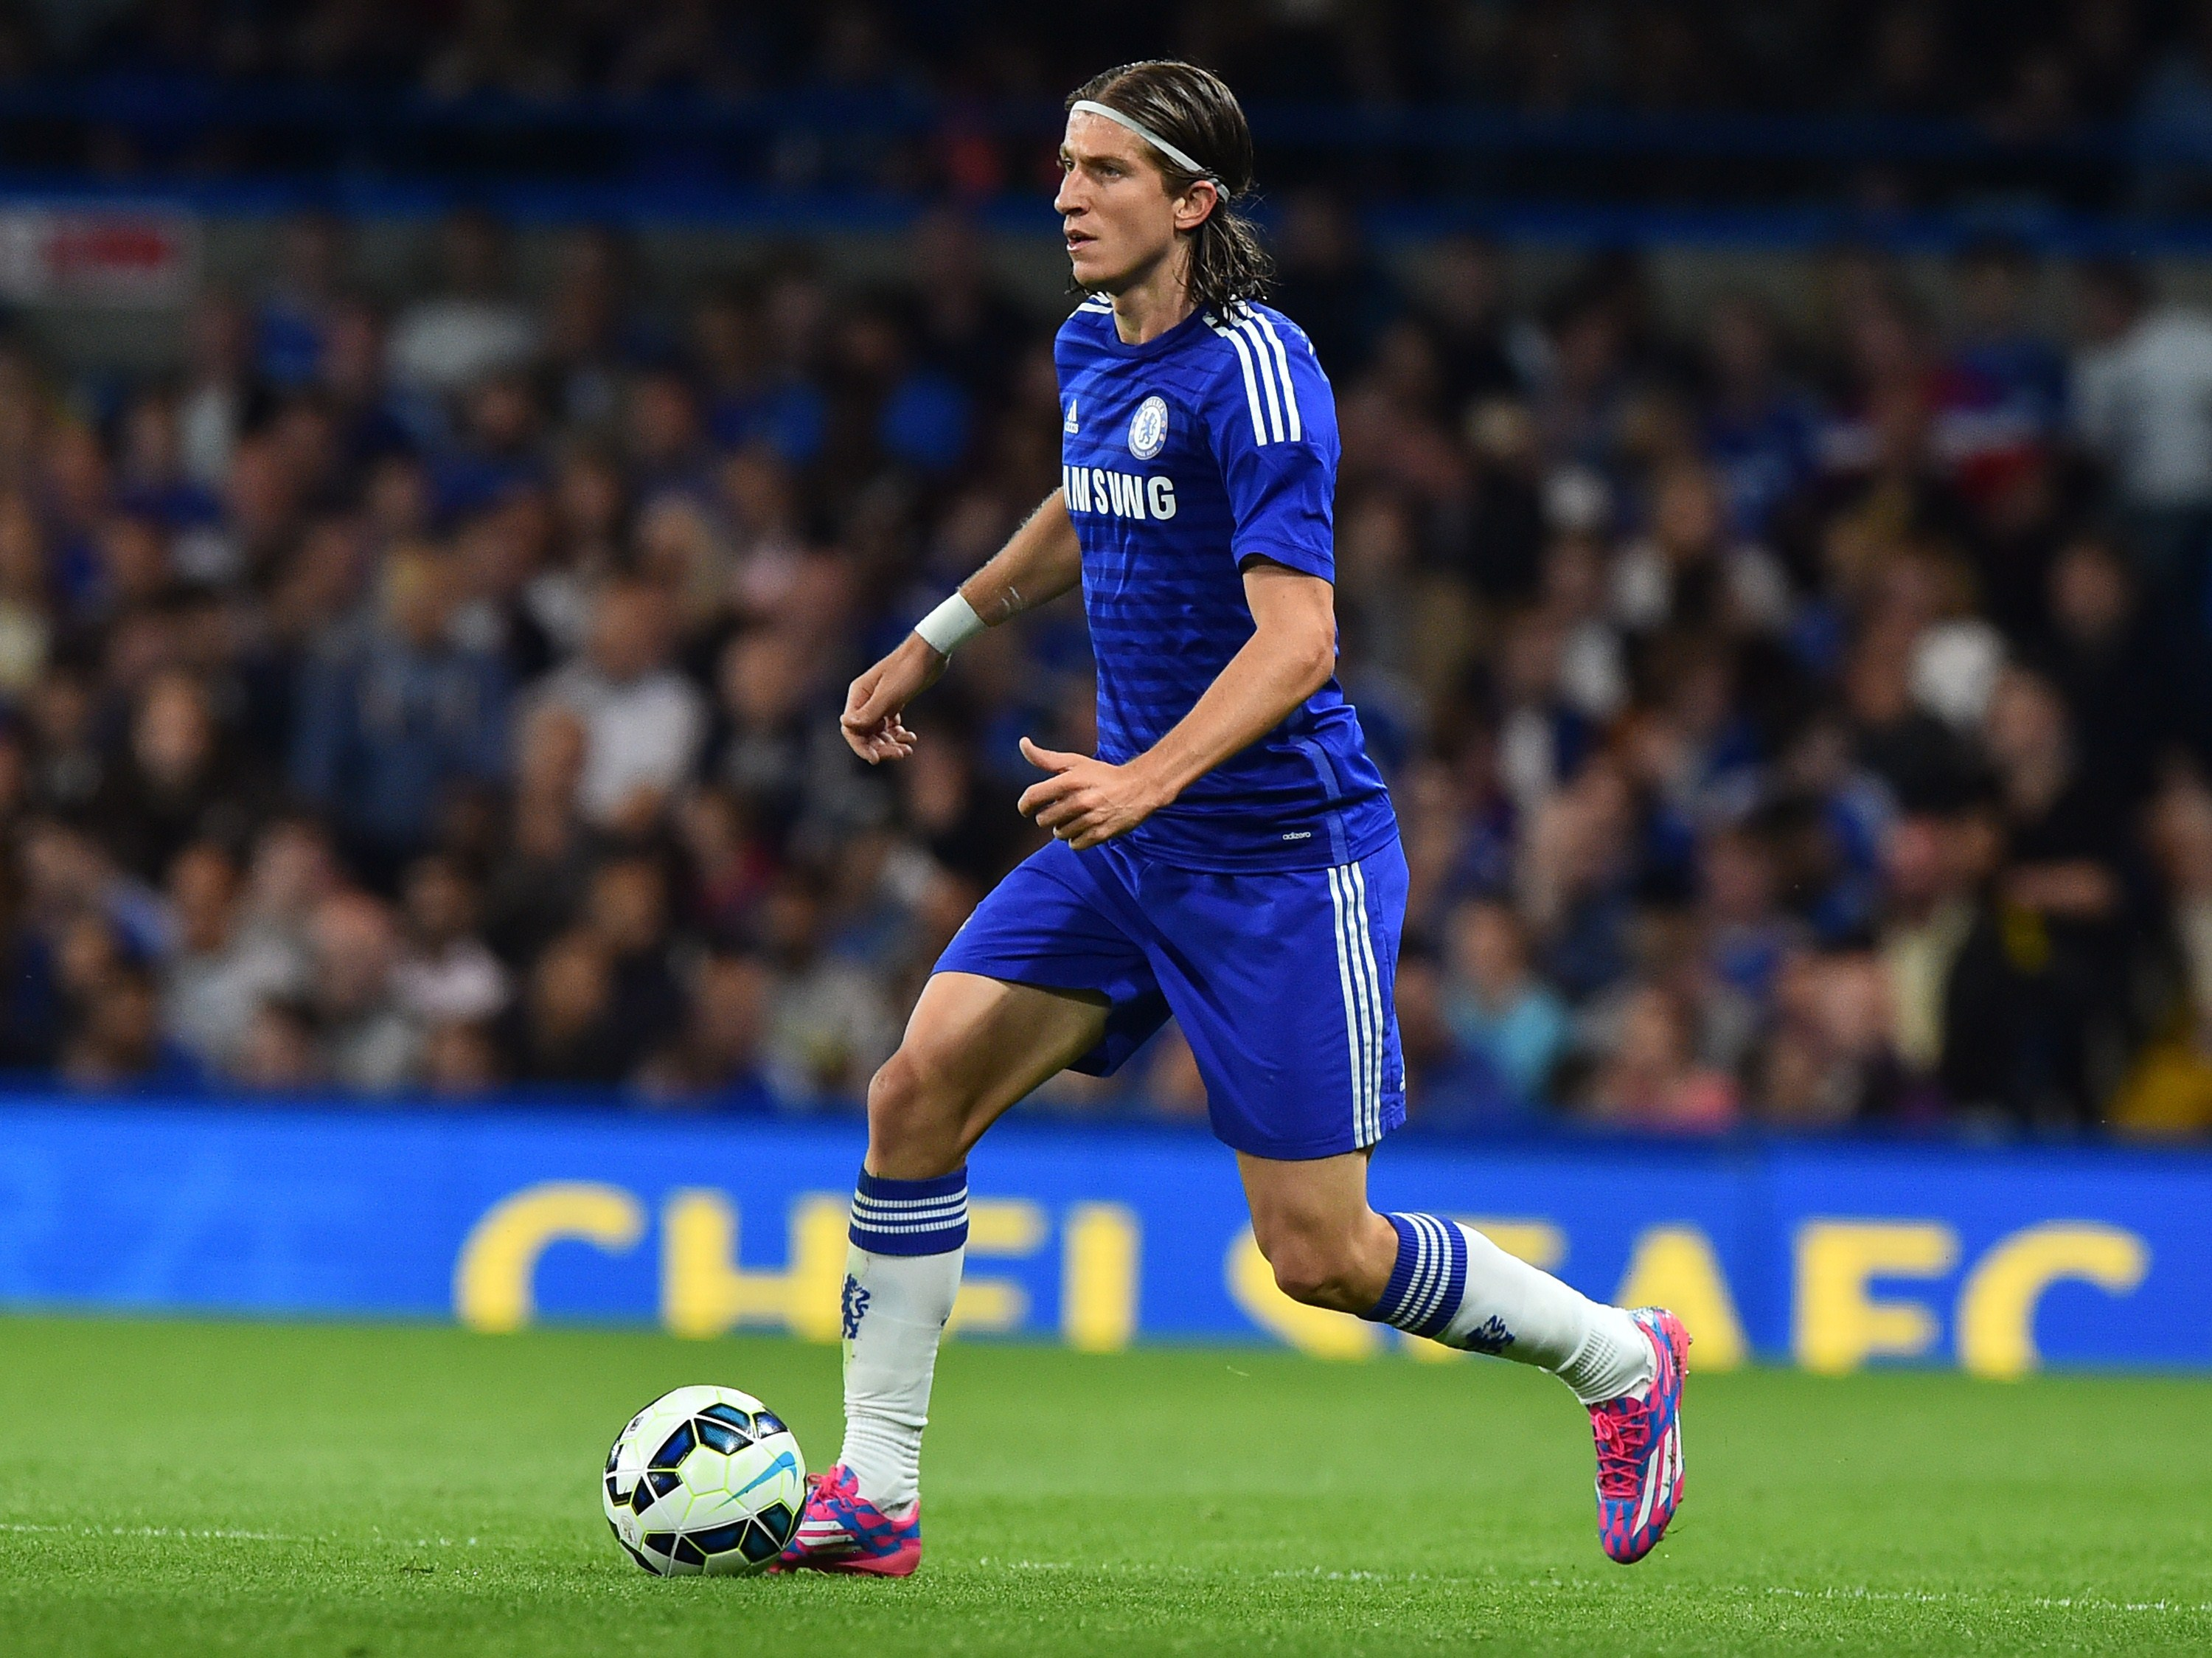 Jose Mourinho's public criticism can be damaging to Chelsea players, says Filipe Luis